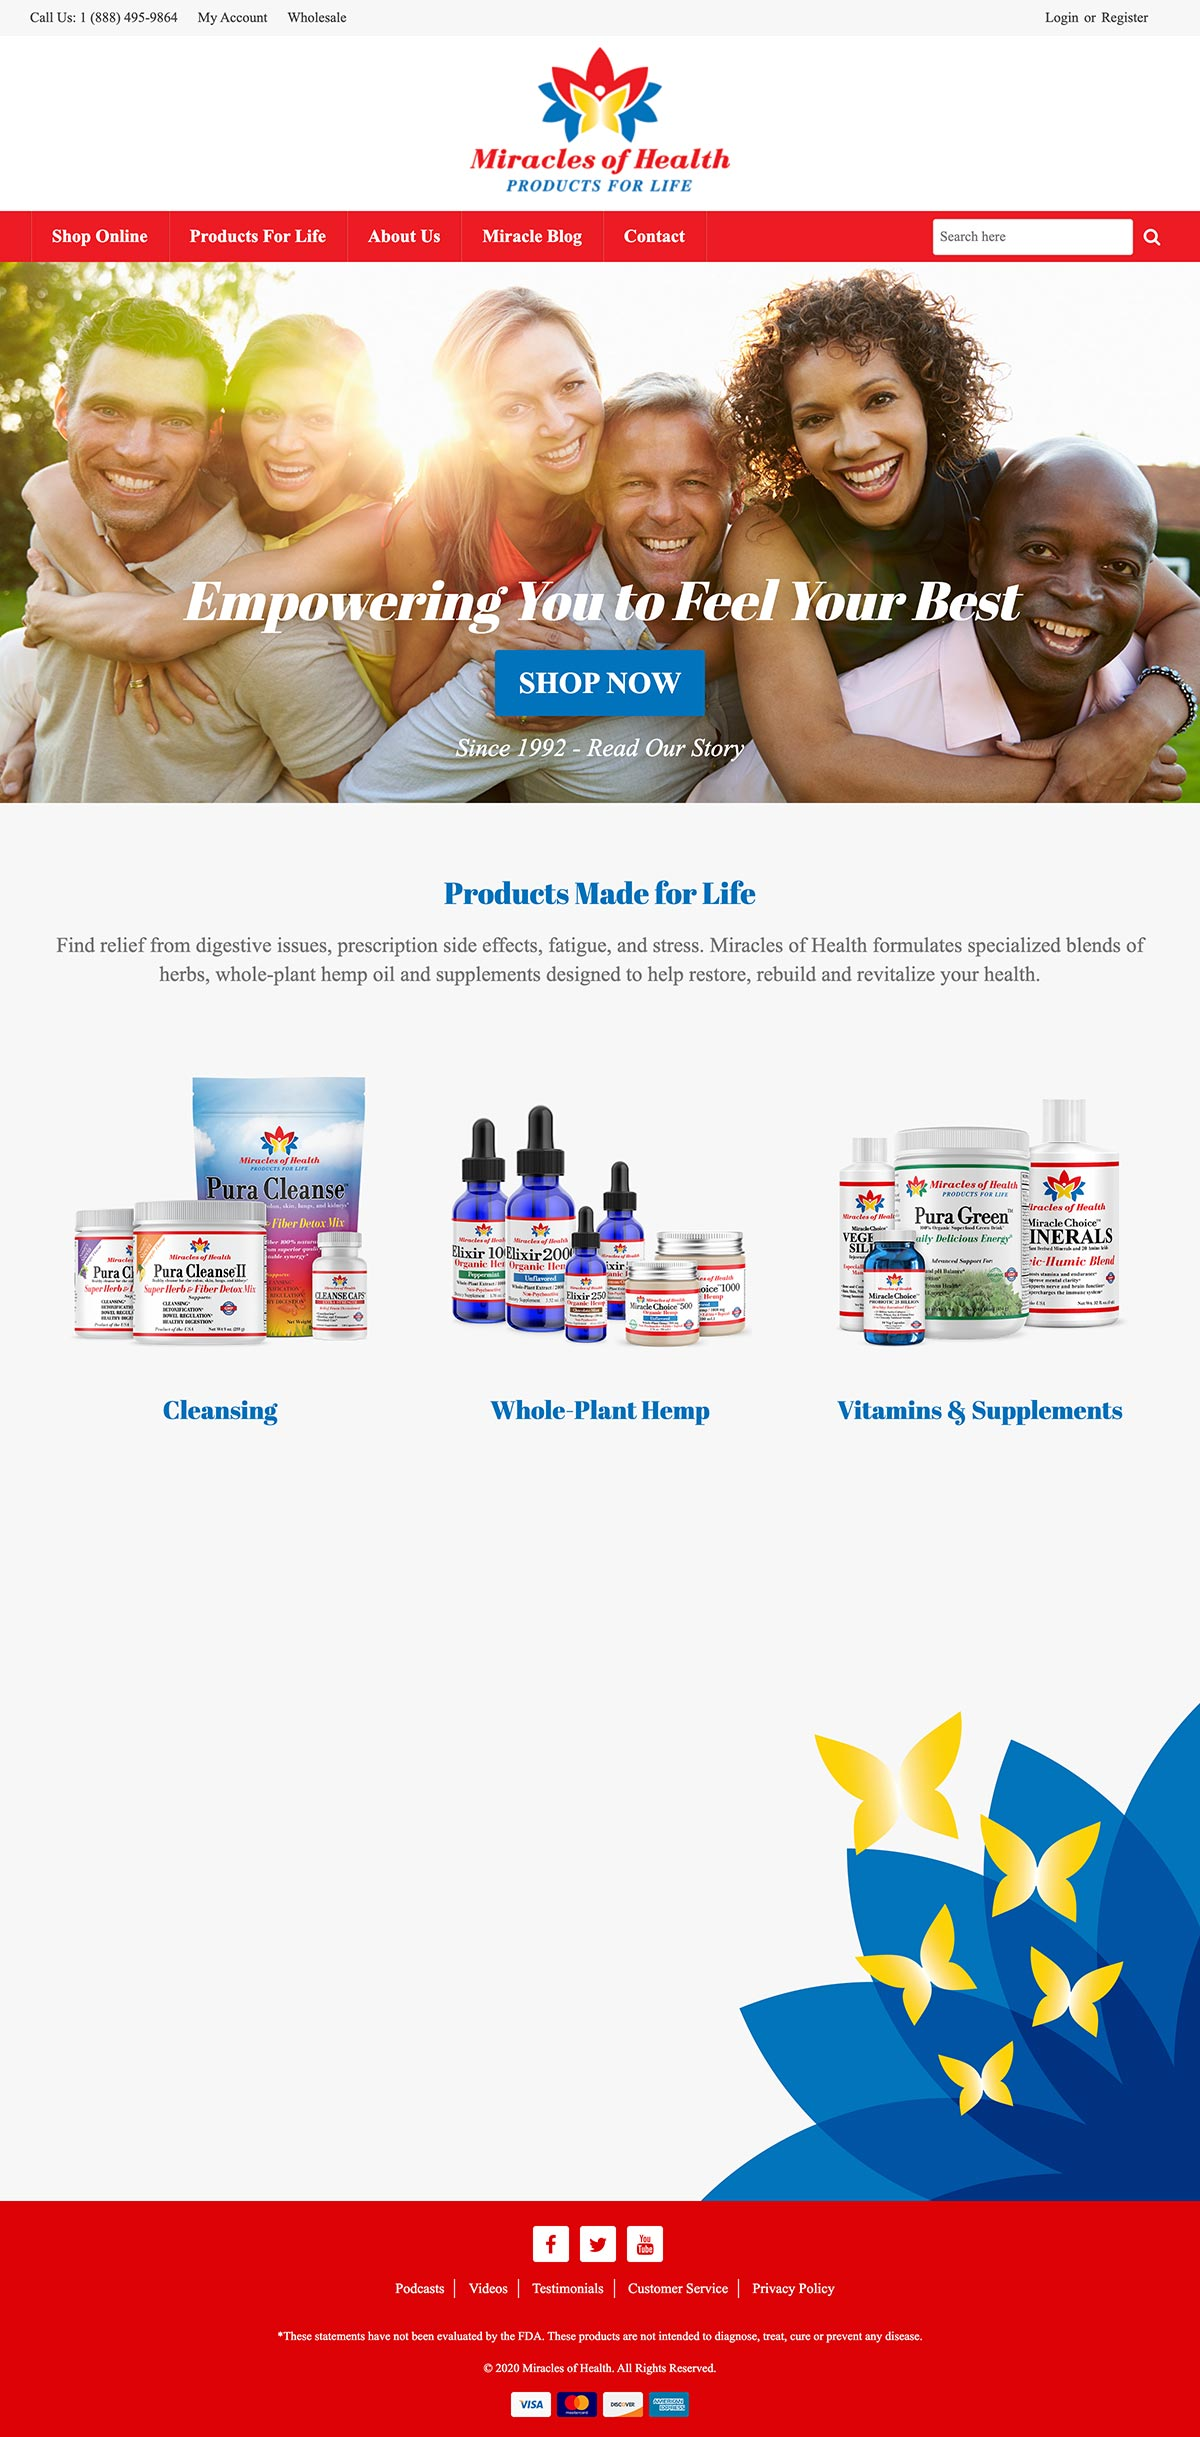 Miracles of Health - Ecommerce Website Design